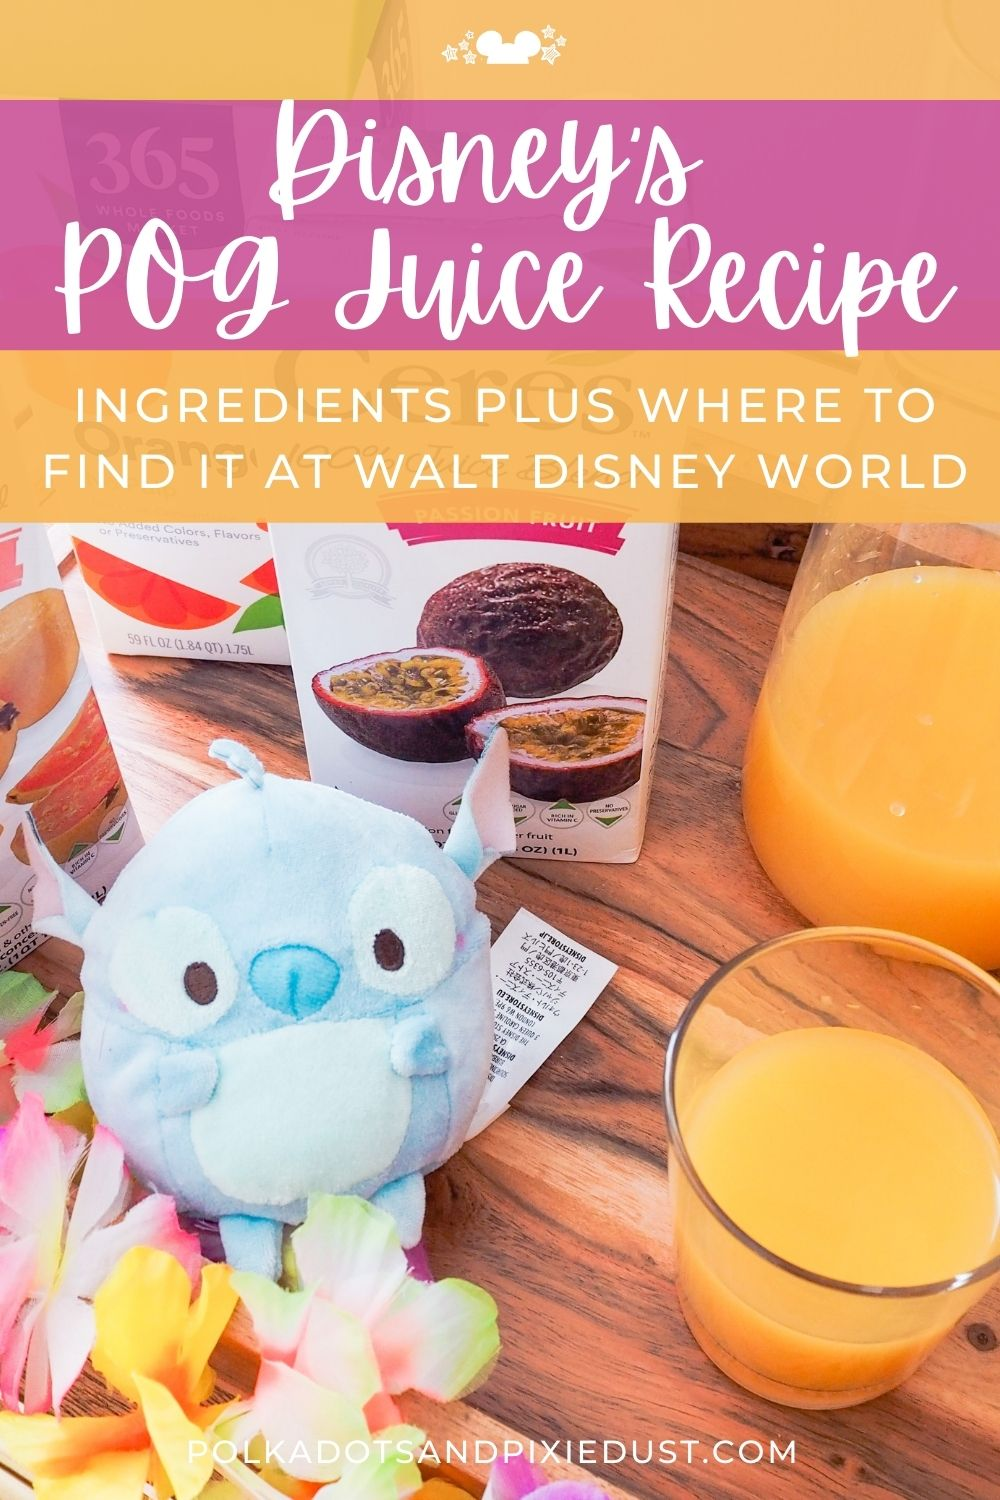 Disney's POG Juice or Jungle Juice has a following! And now you can make it at home! This tropical fruit juice is easy to make. Check out the recipe and where to find this drink in Walt Disney World! #disneypog #disneyrecipes #polkadotpixies